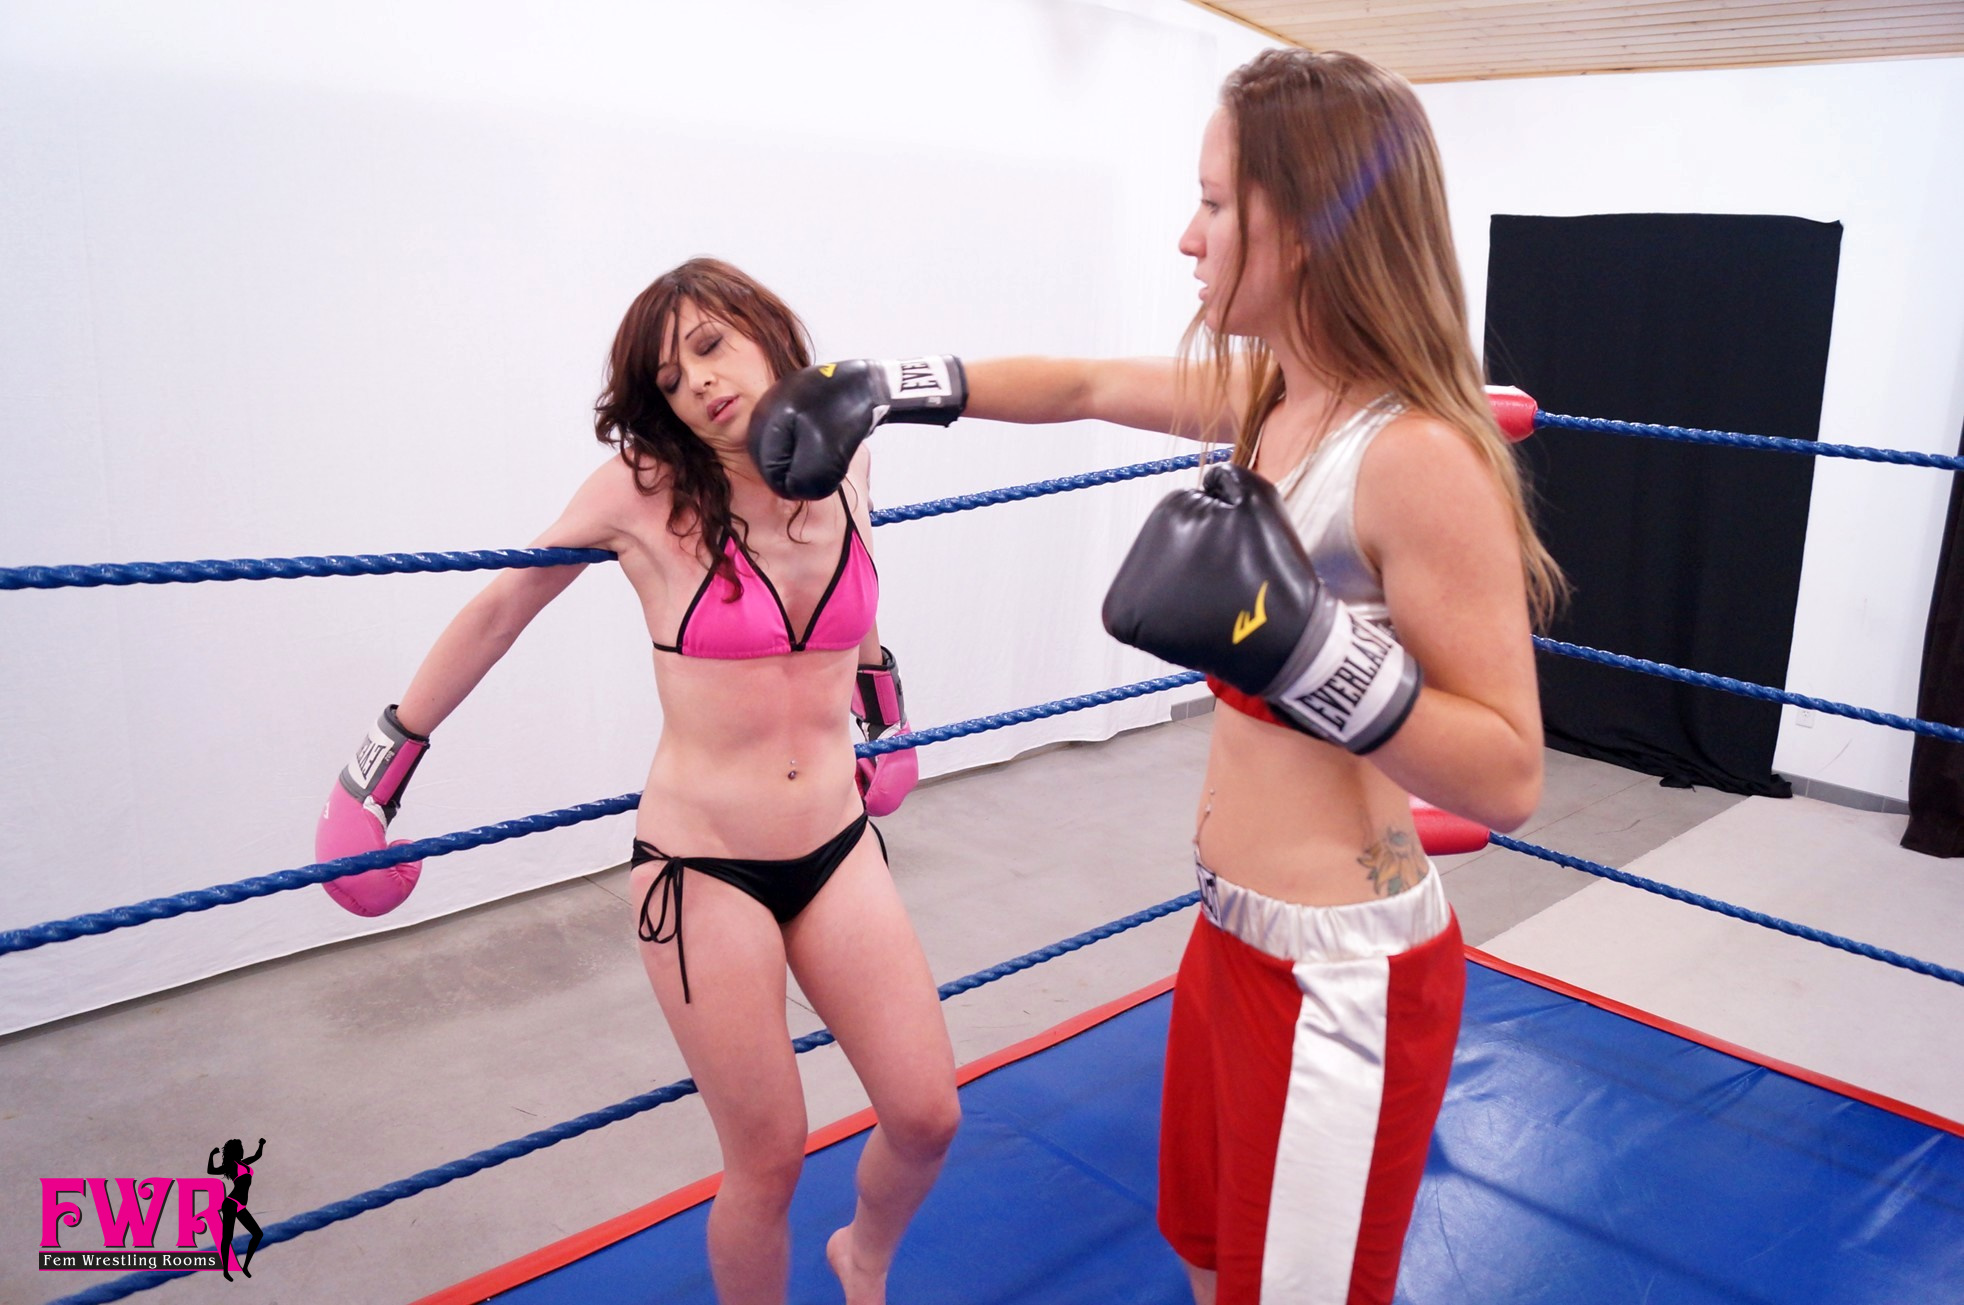 Charlie's Boxing Experience: Part Two - Fem Wrestling Rooms